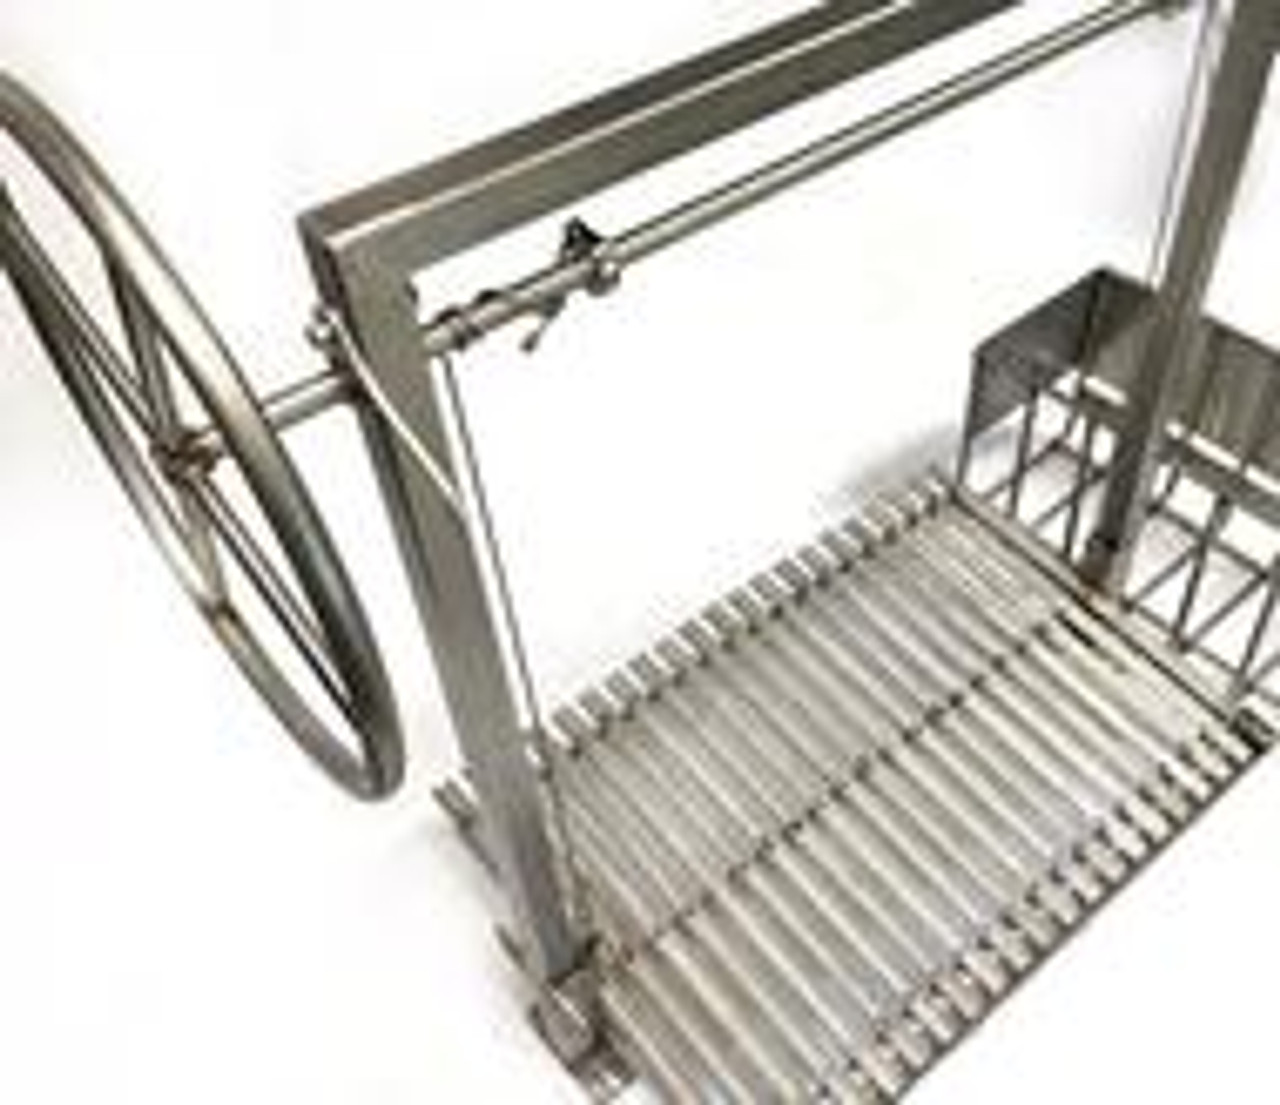 Stainless Steel Argentine Masonry Grill Kits with Side Brasero and No Flange